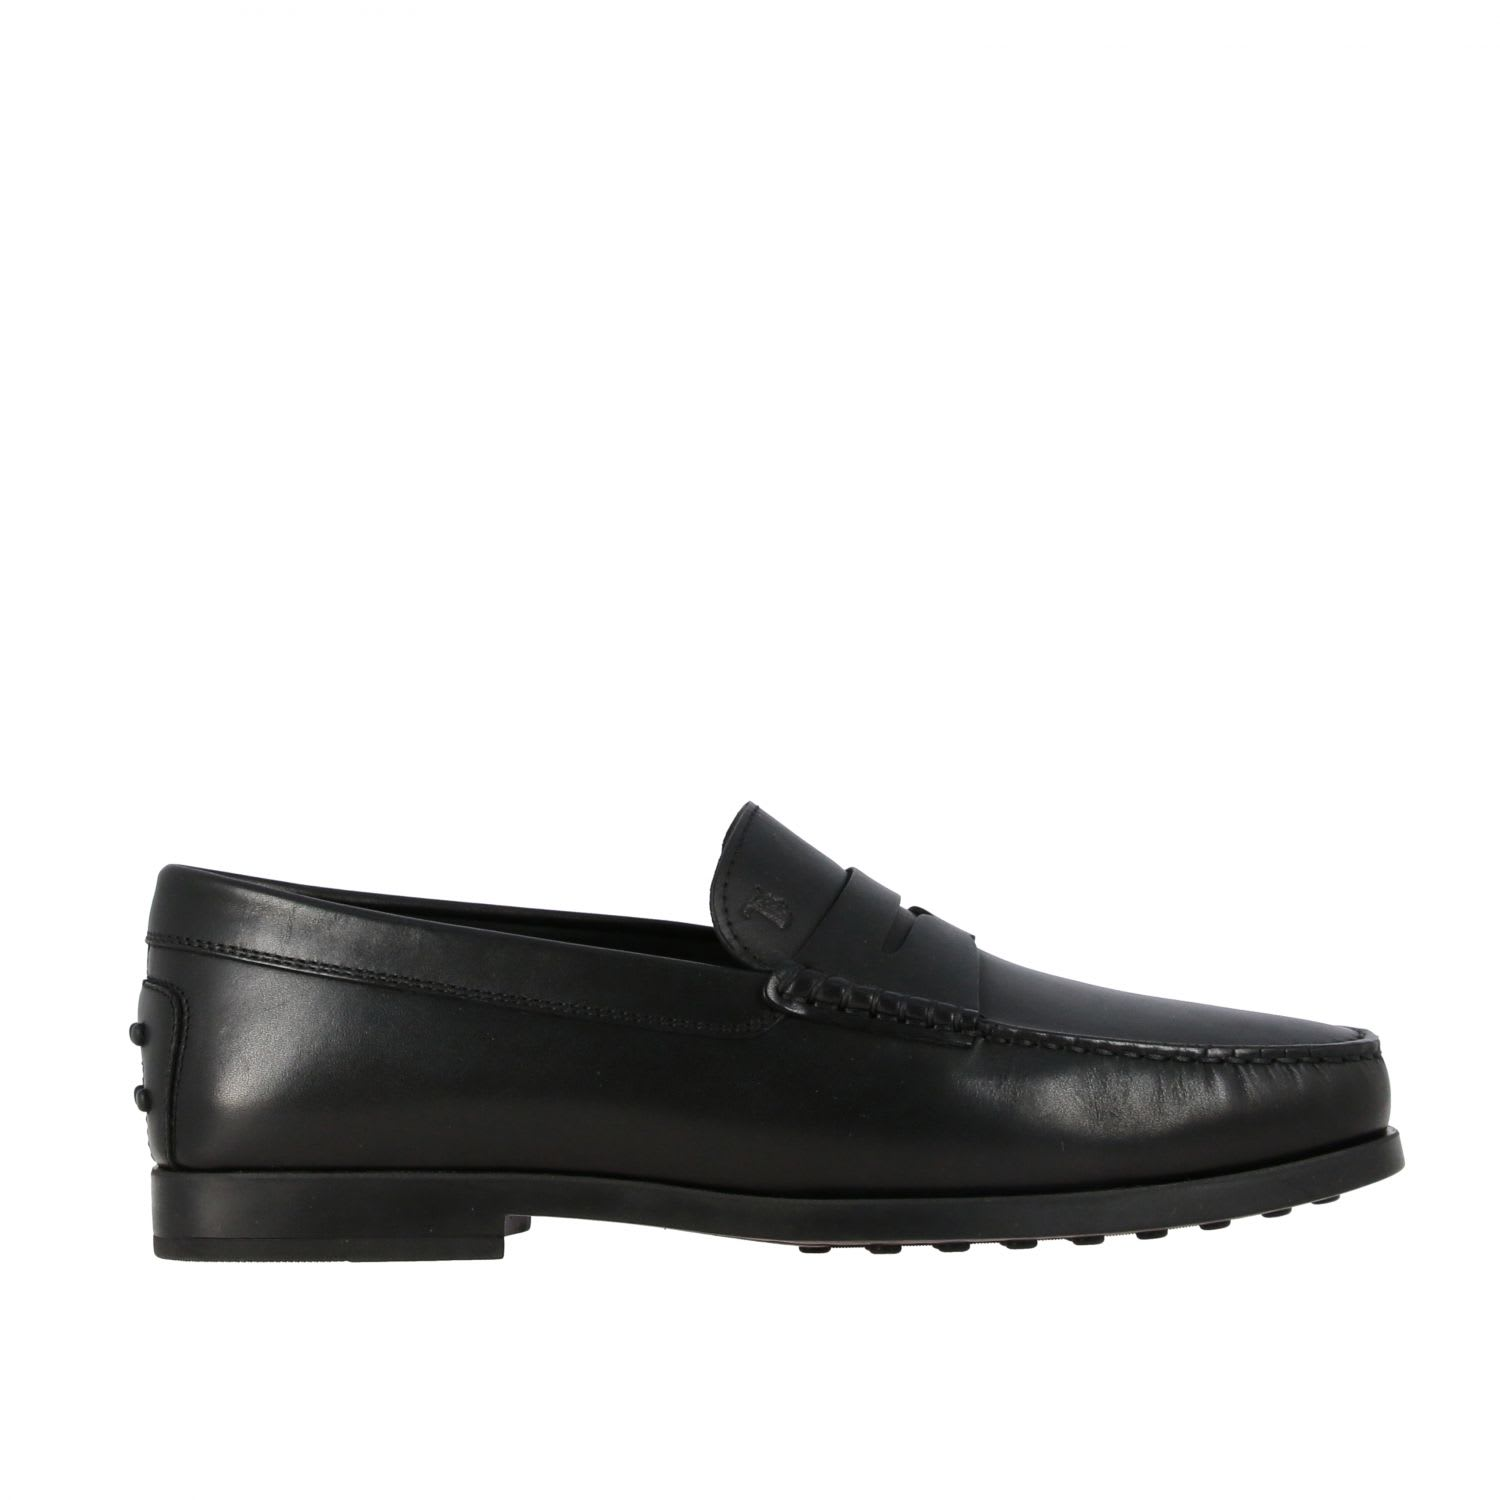 Tods Loafers Tods Gommini Leather Loafer